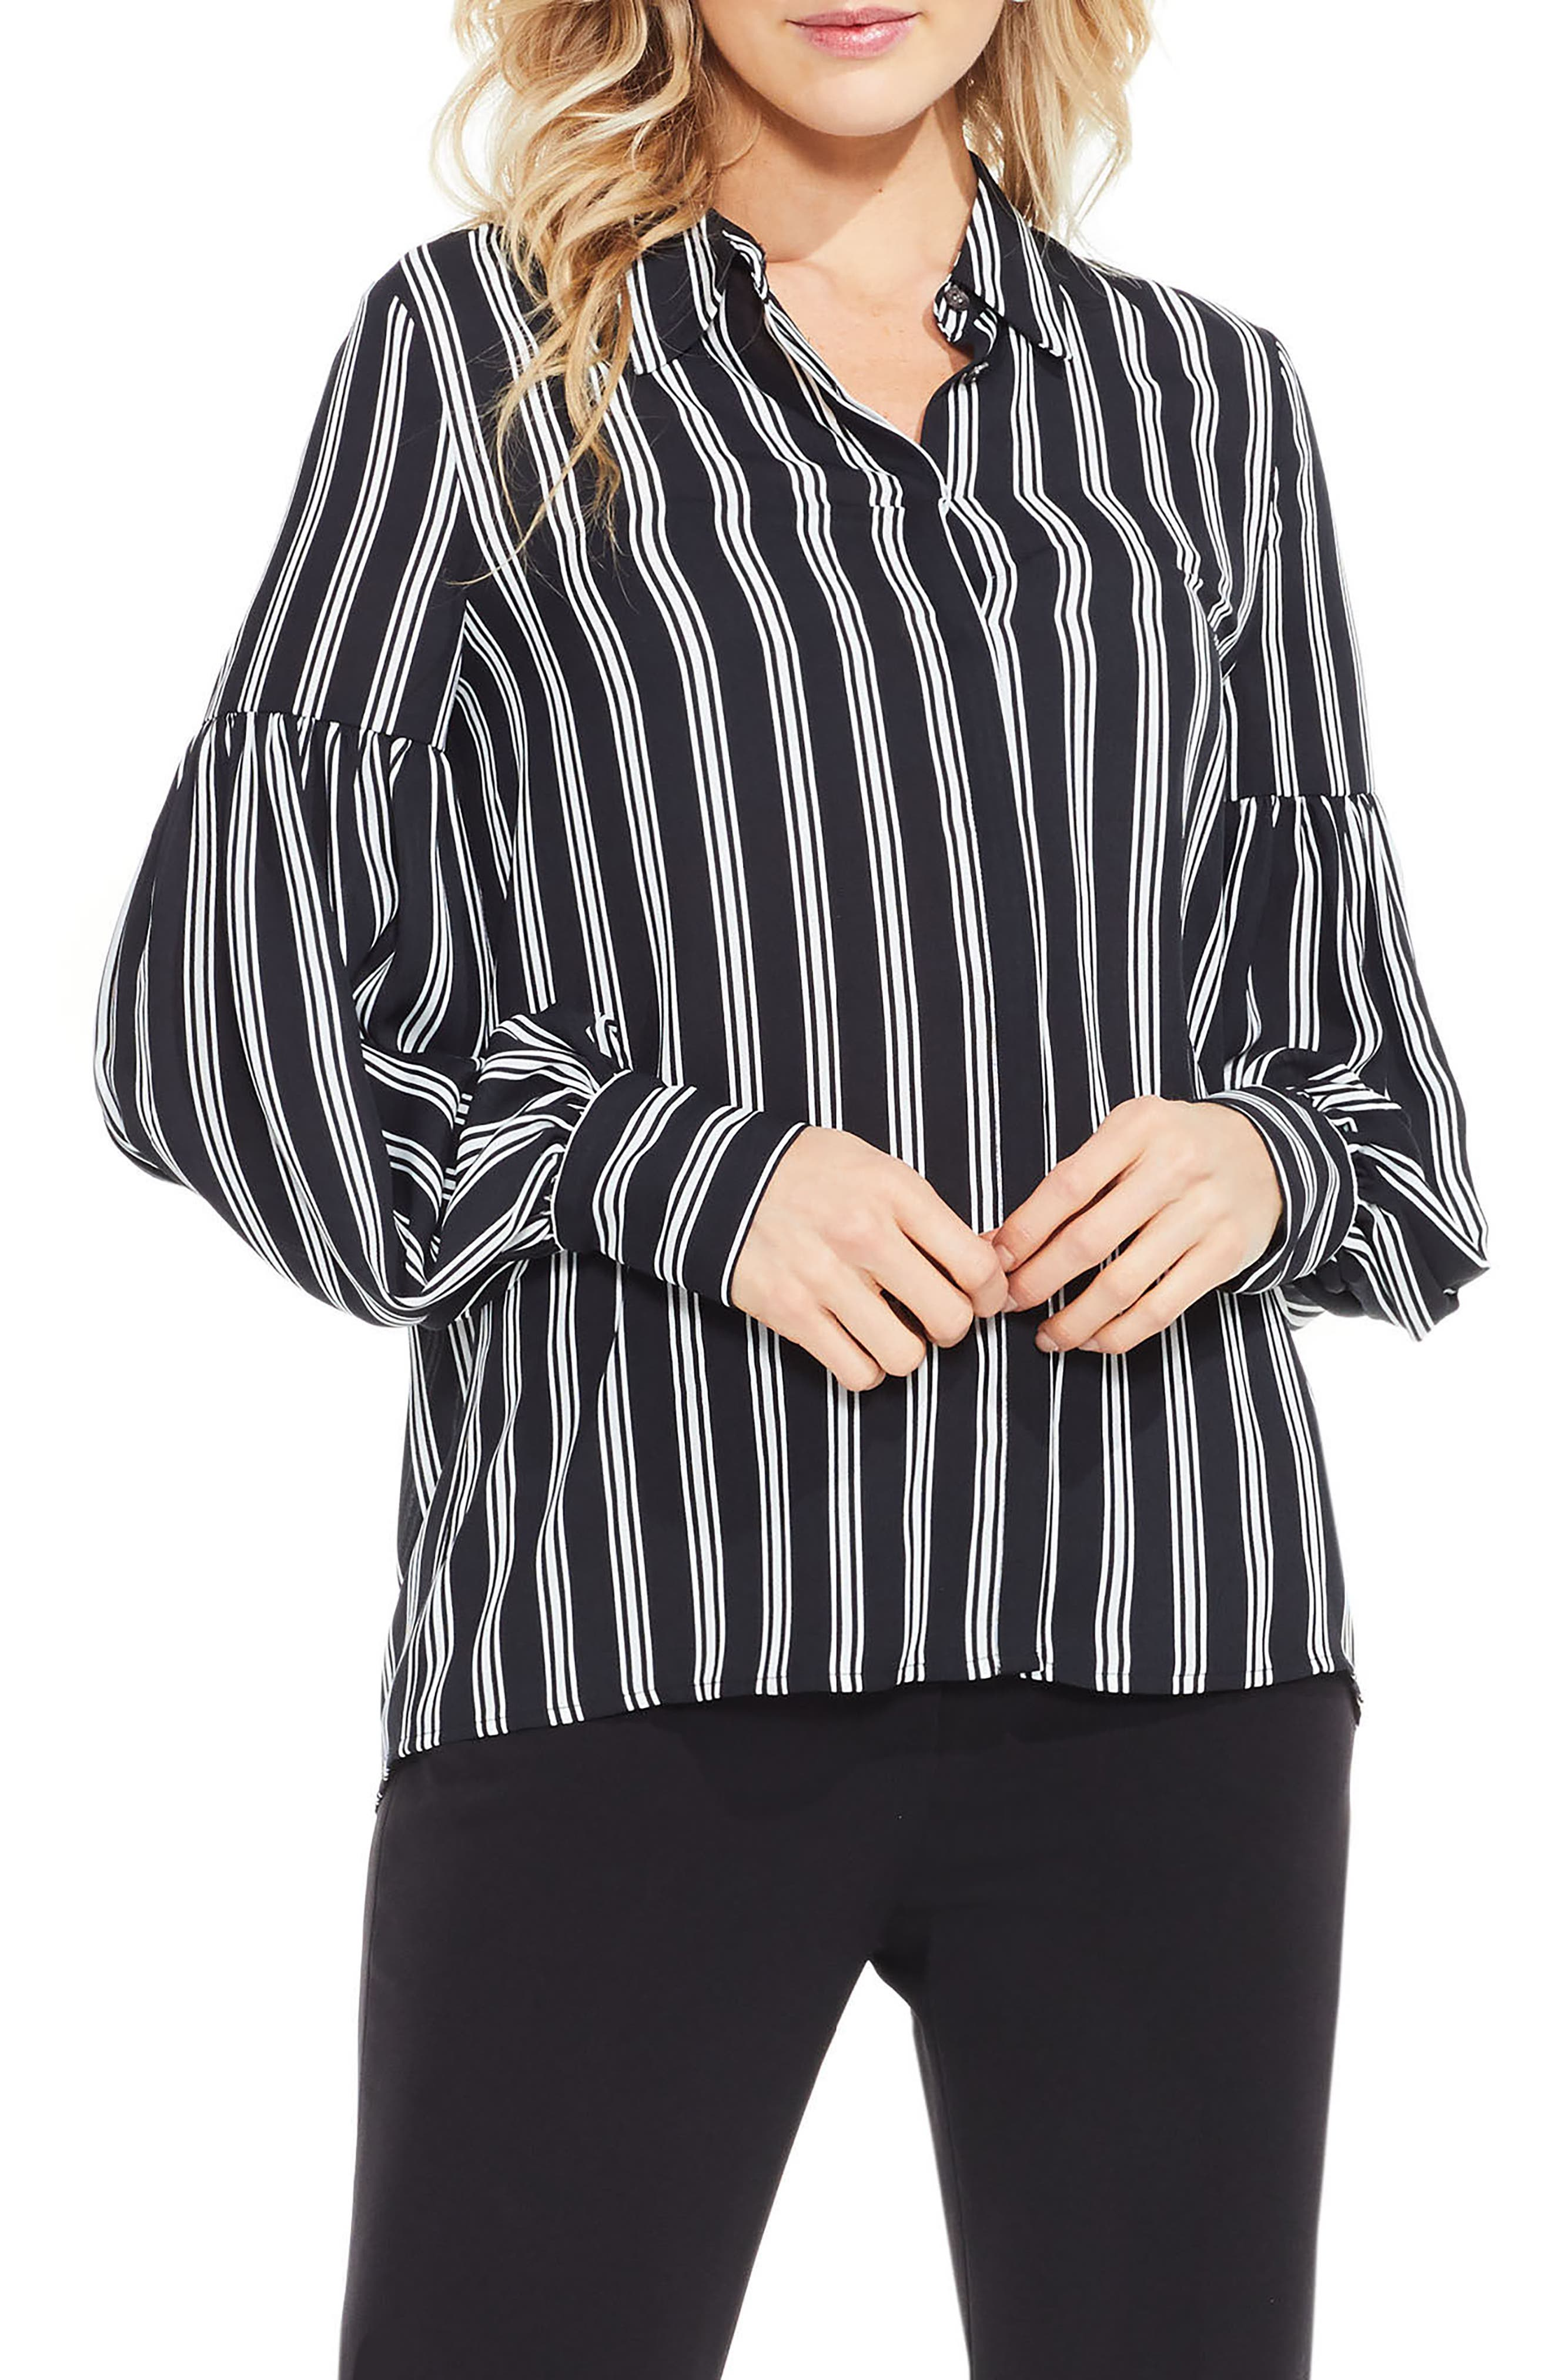 Main Image - Vince Camuto Stripe Puff Sleeve Blouse